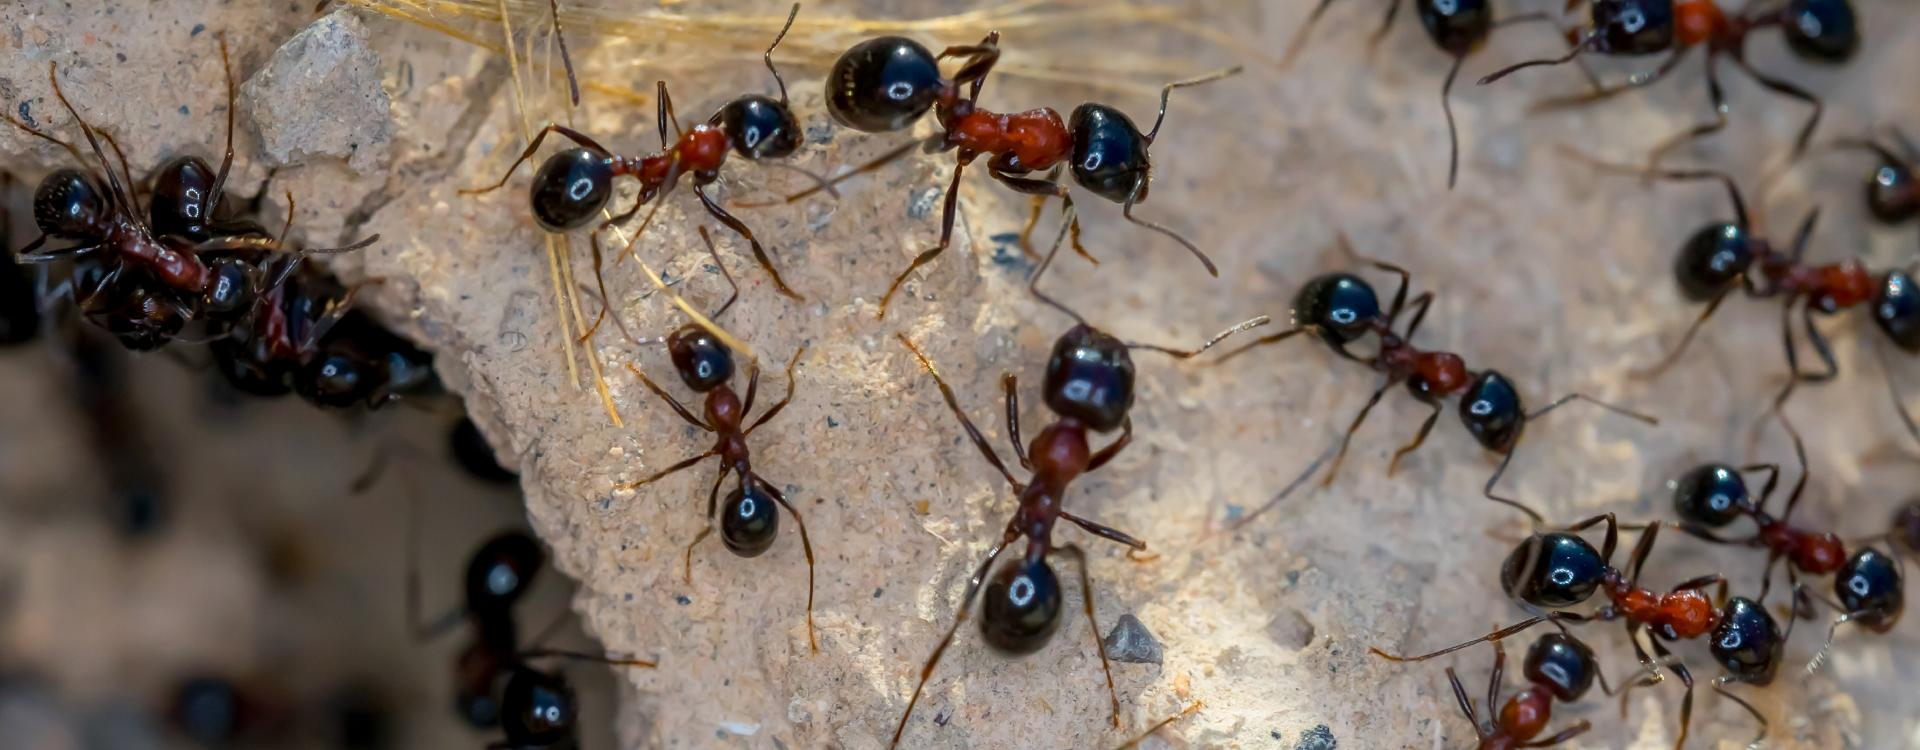 ants swarming around a hole